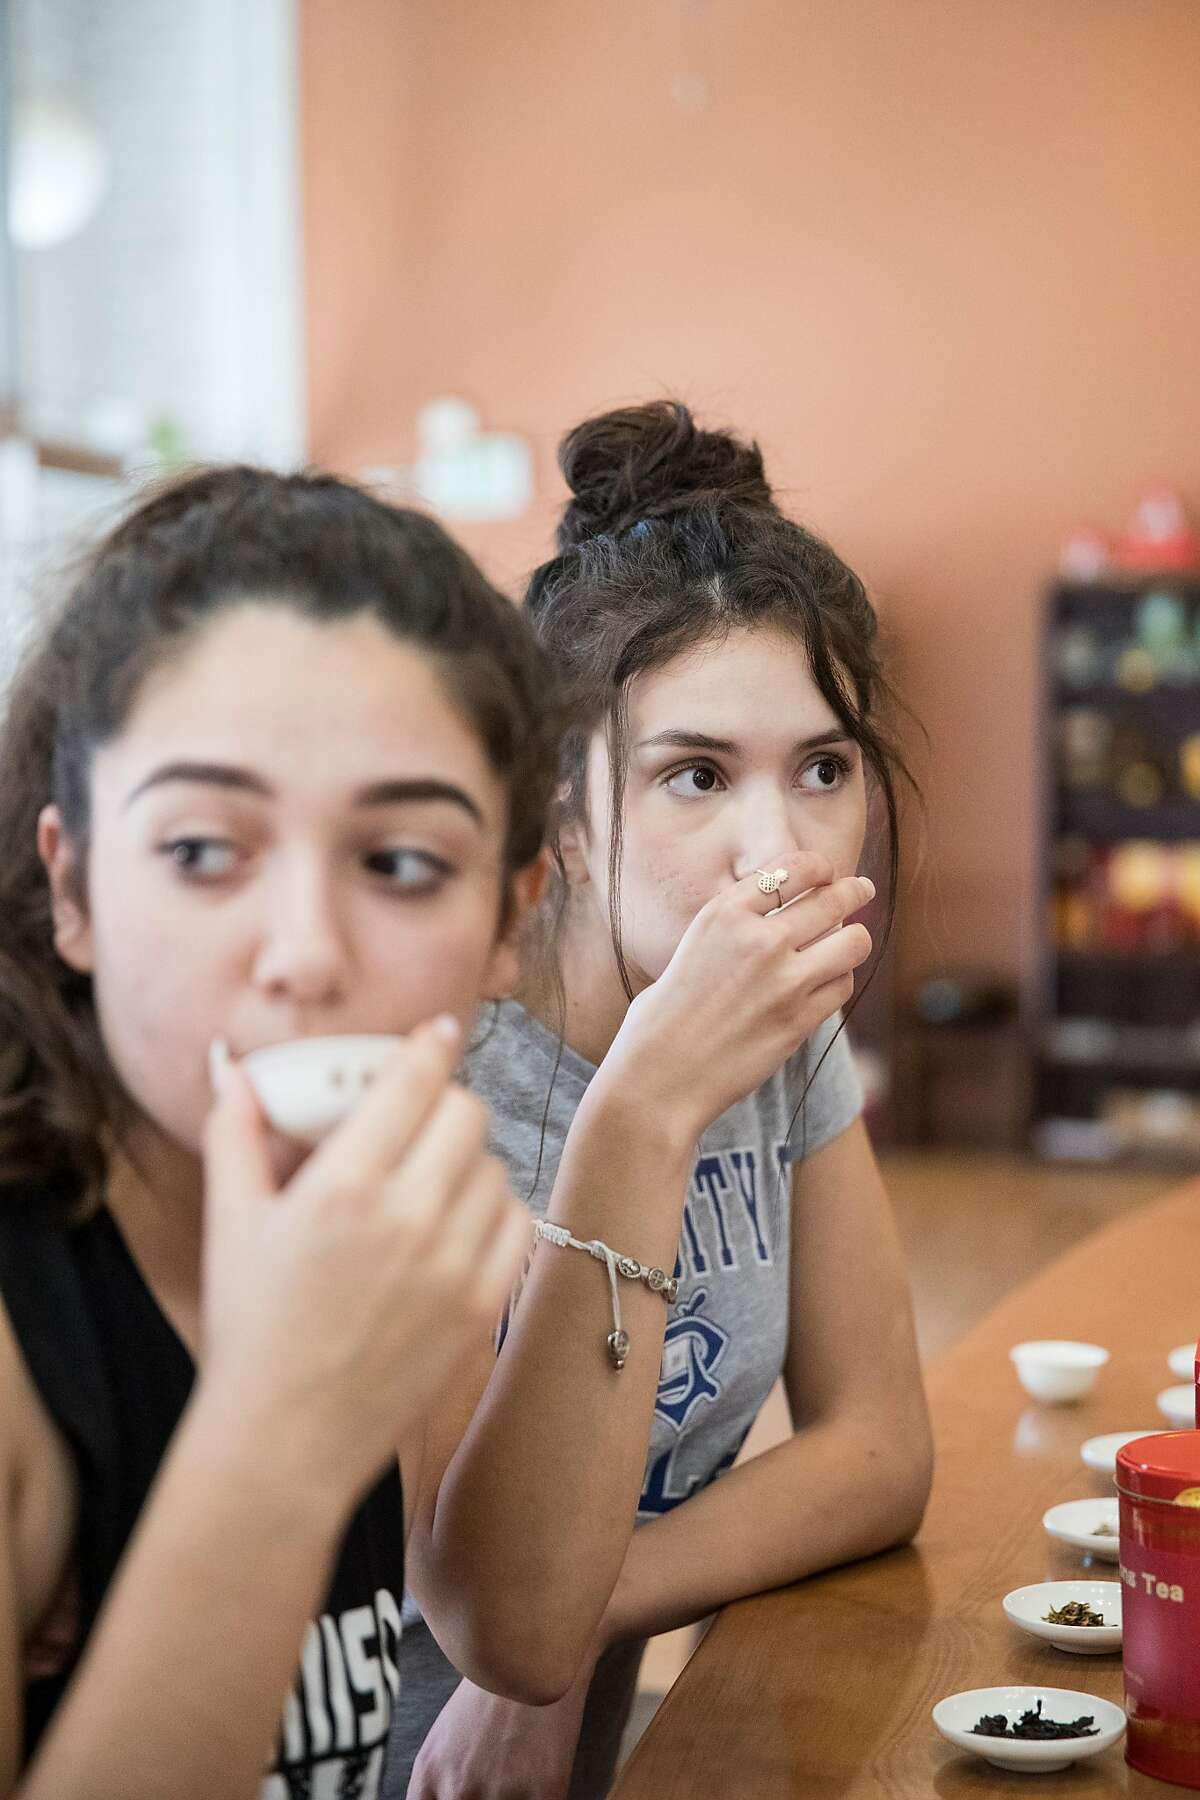 Bianca Torrente (left) and Annette Kaehler participate in a tea flight tasting at Tea-Tasting in downtown Lodi, Calif., on Saturday, August 17, 2019. The business offers table tastings of a type of Wuyi Rock Tea and also flight tastings of tea.